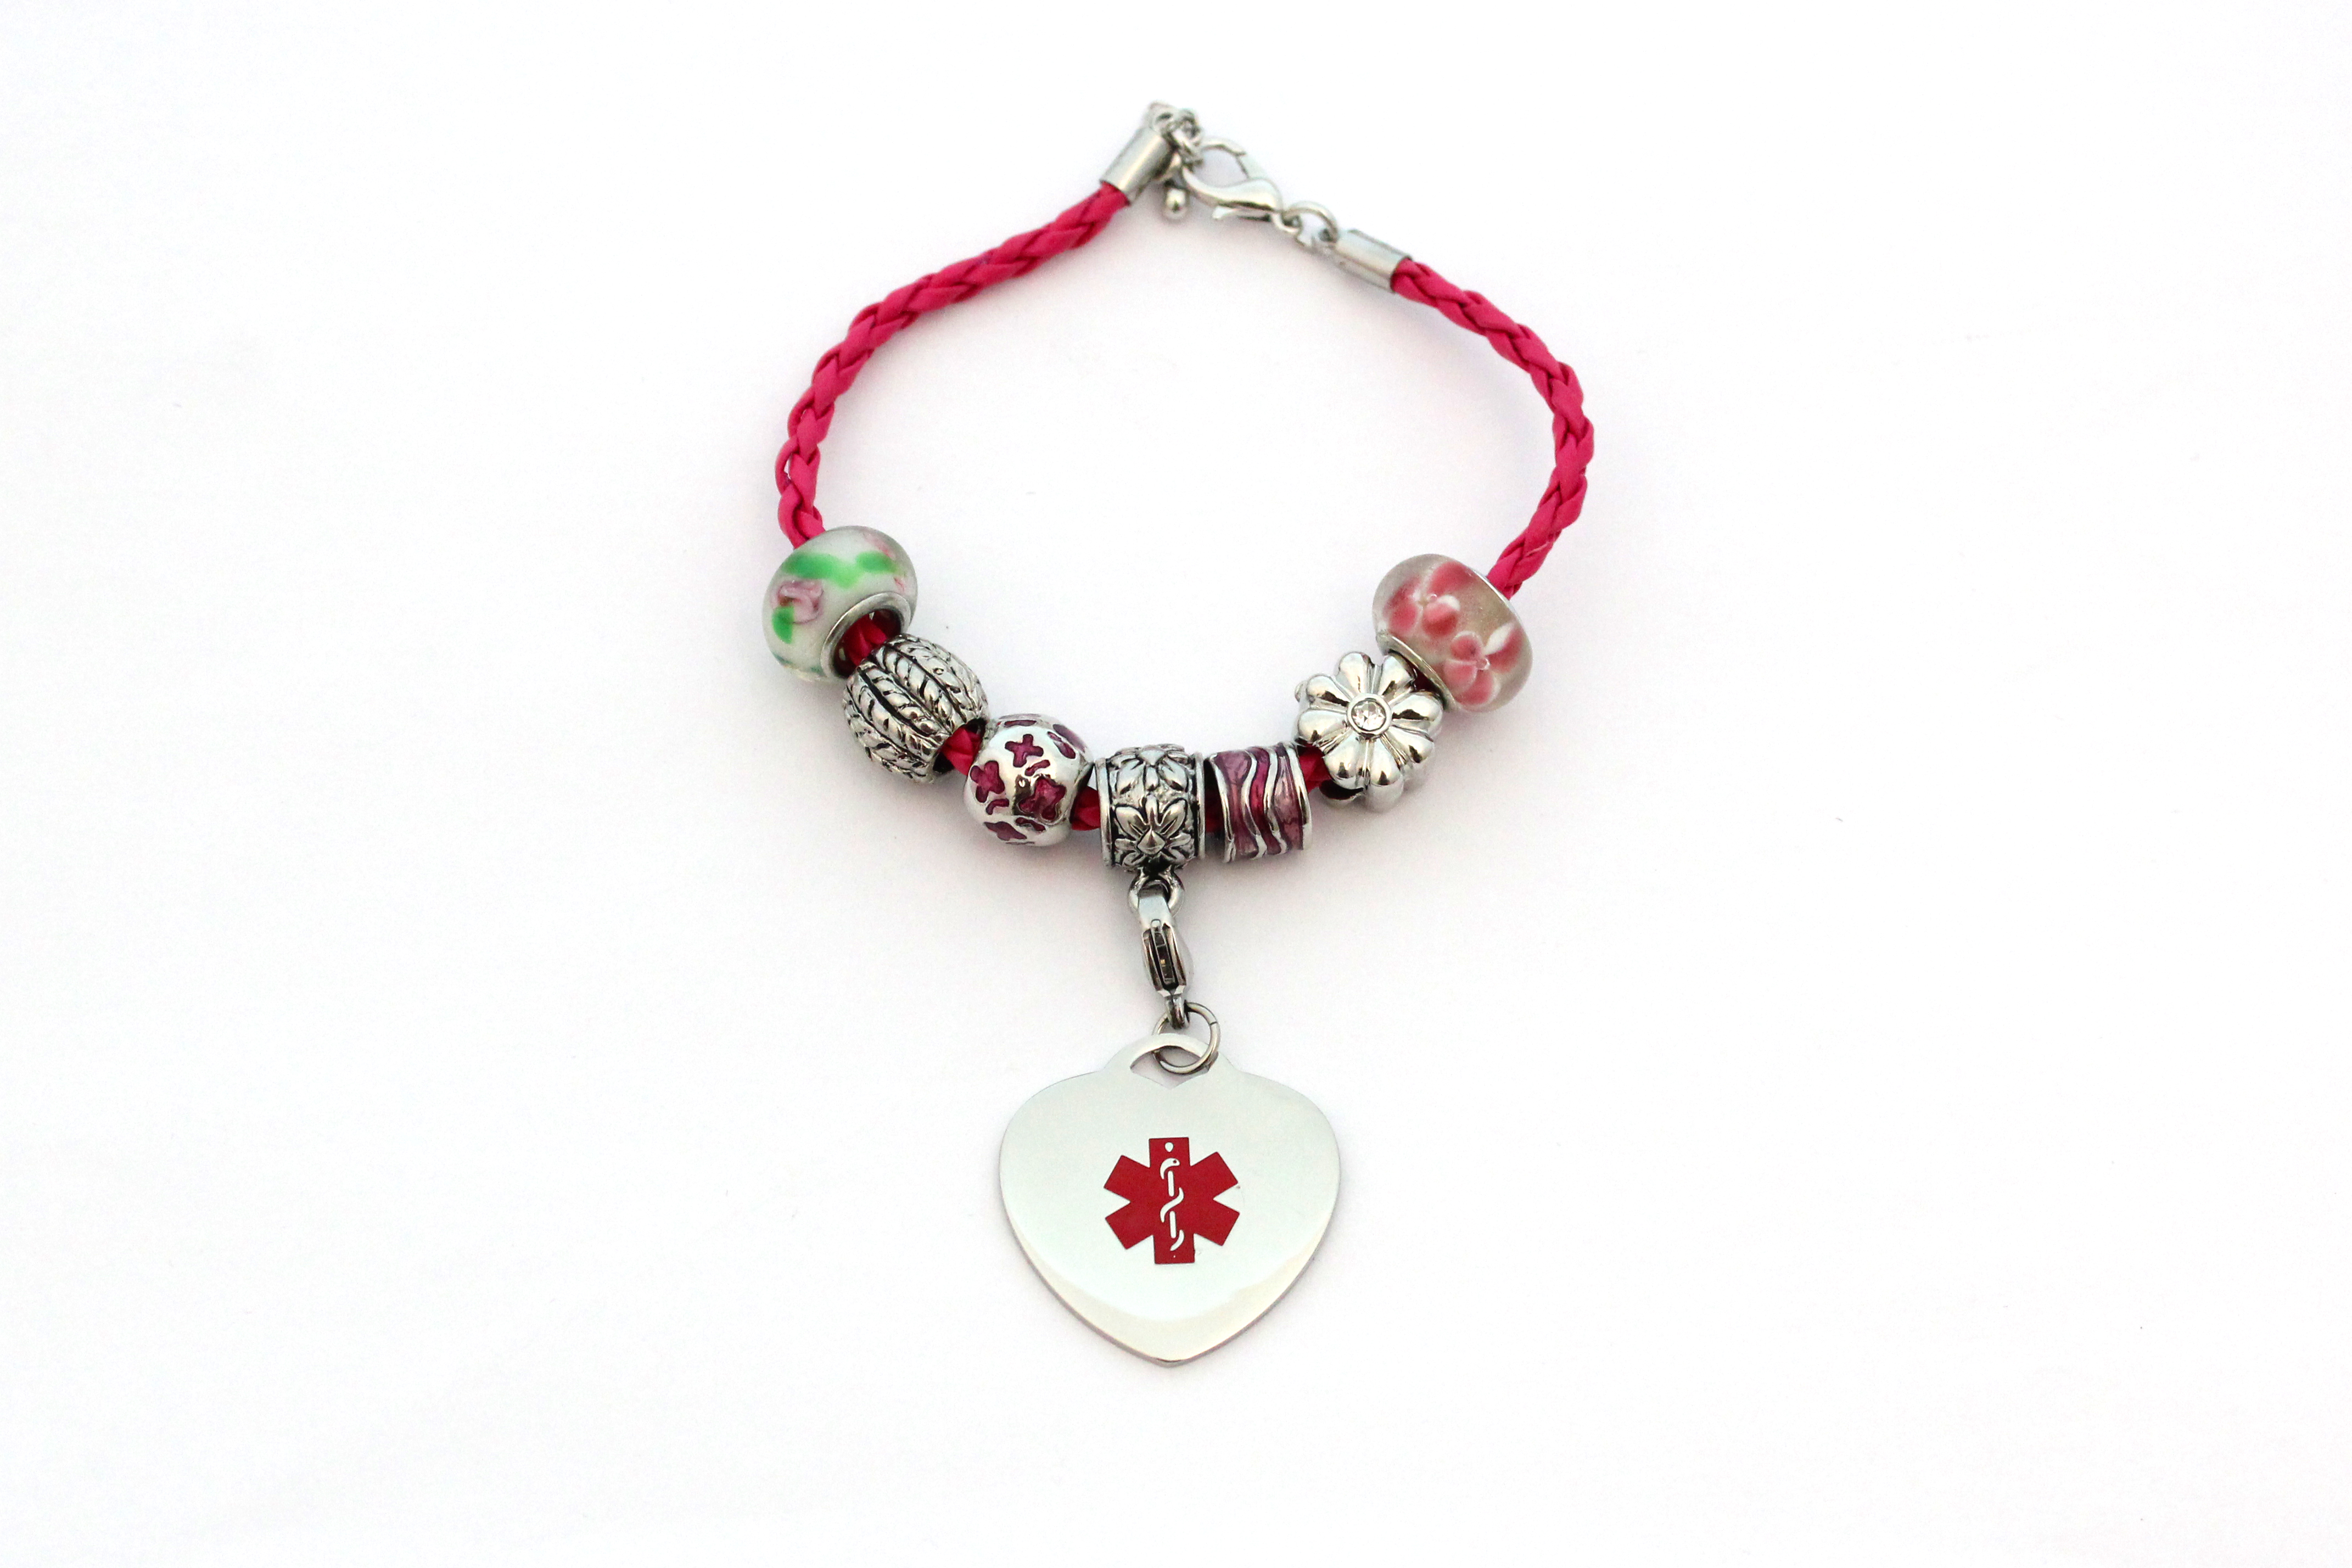 Beaded Style Pink Leather Bracelet - Medical ID